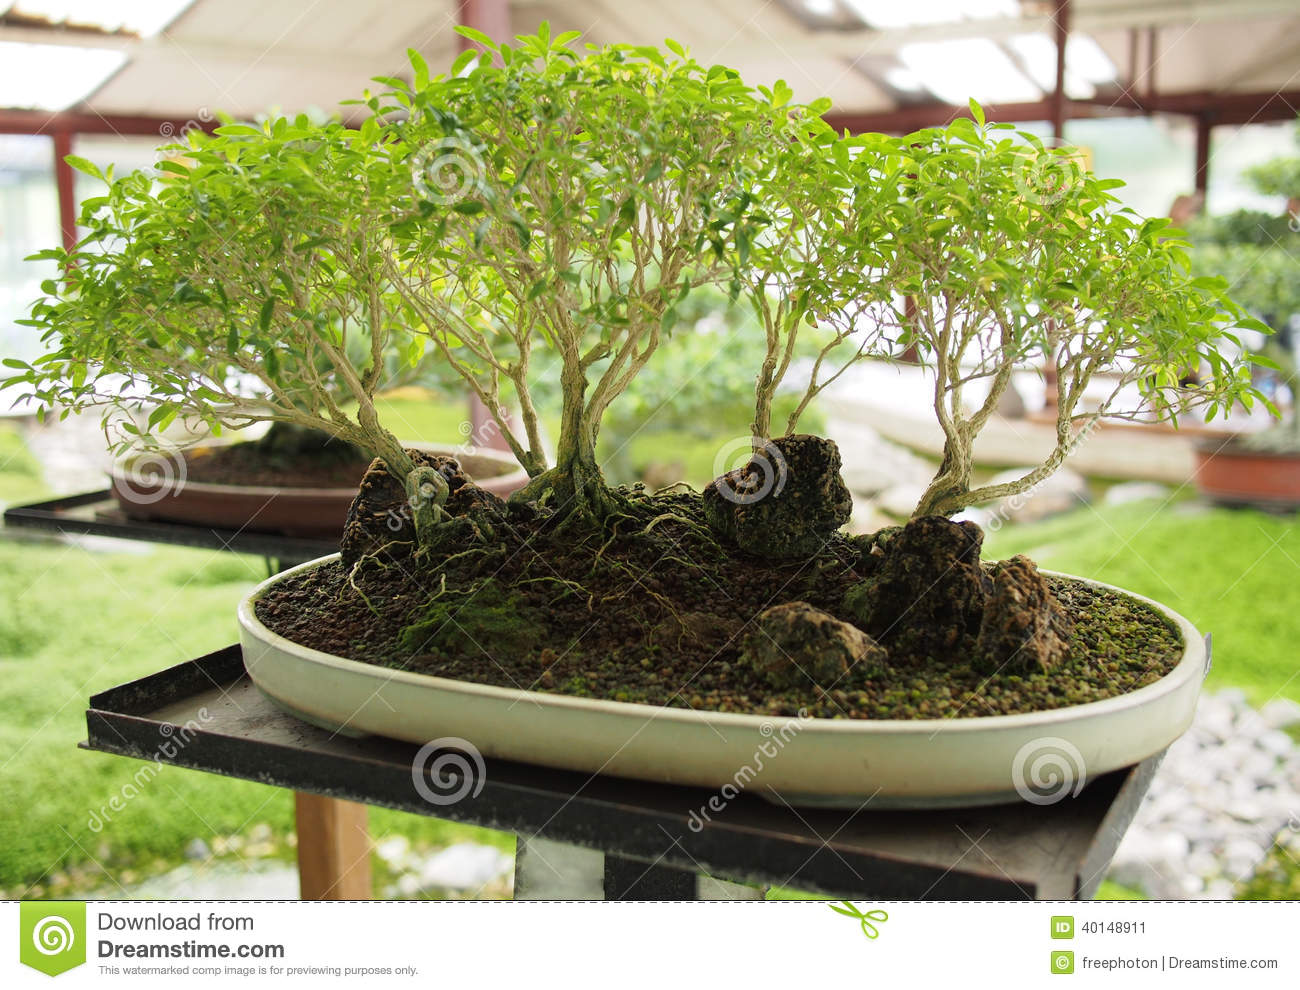 2 458 Bonsai Forest Photos Free Royalty Free Stock Photos From Dreamstime